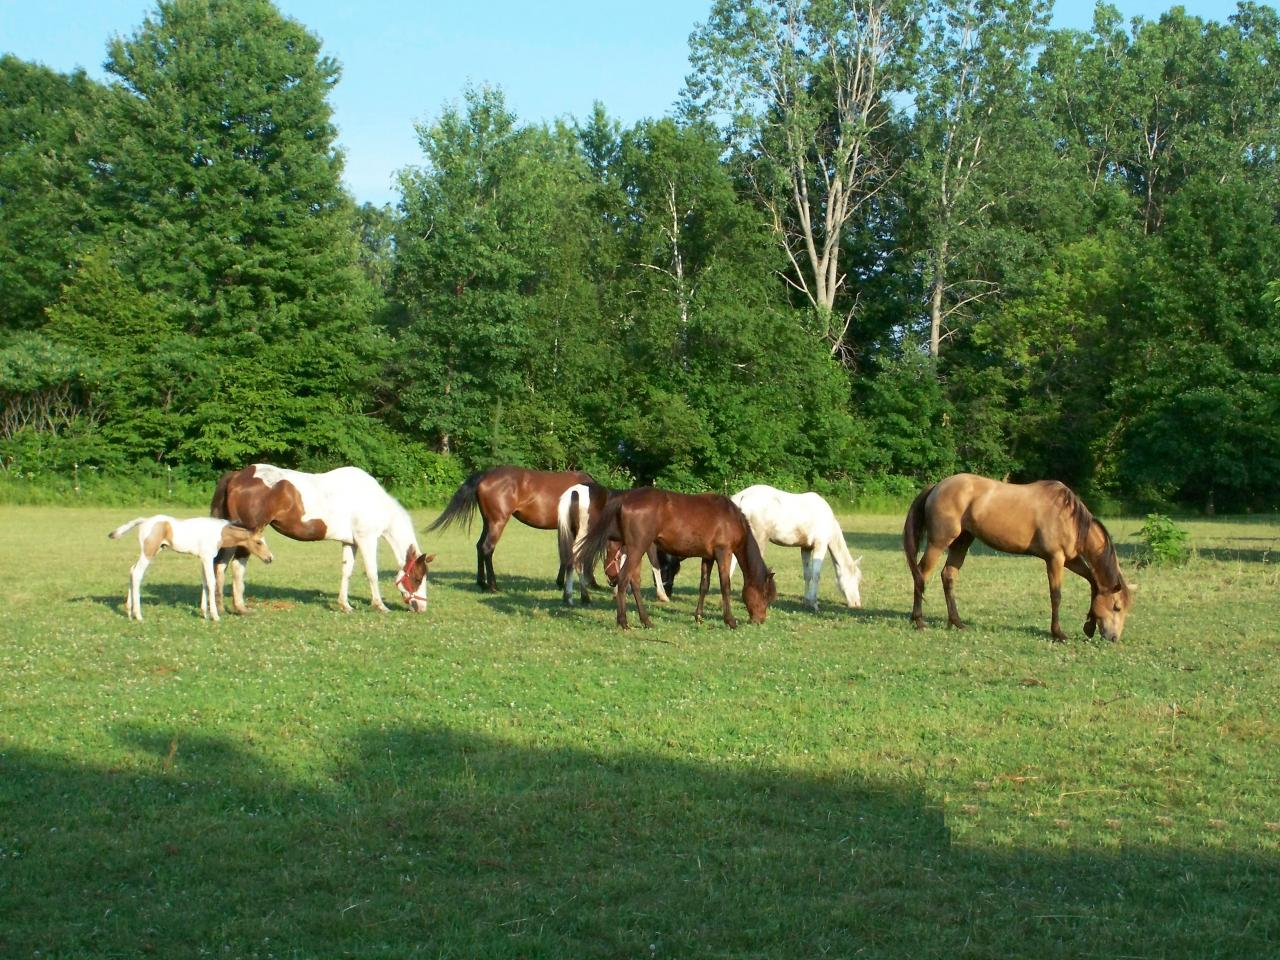 Painted Dreams Farm Horse Riding Lessons In Bucks County Pa Summer Cs Painted Dreams Horse